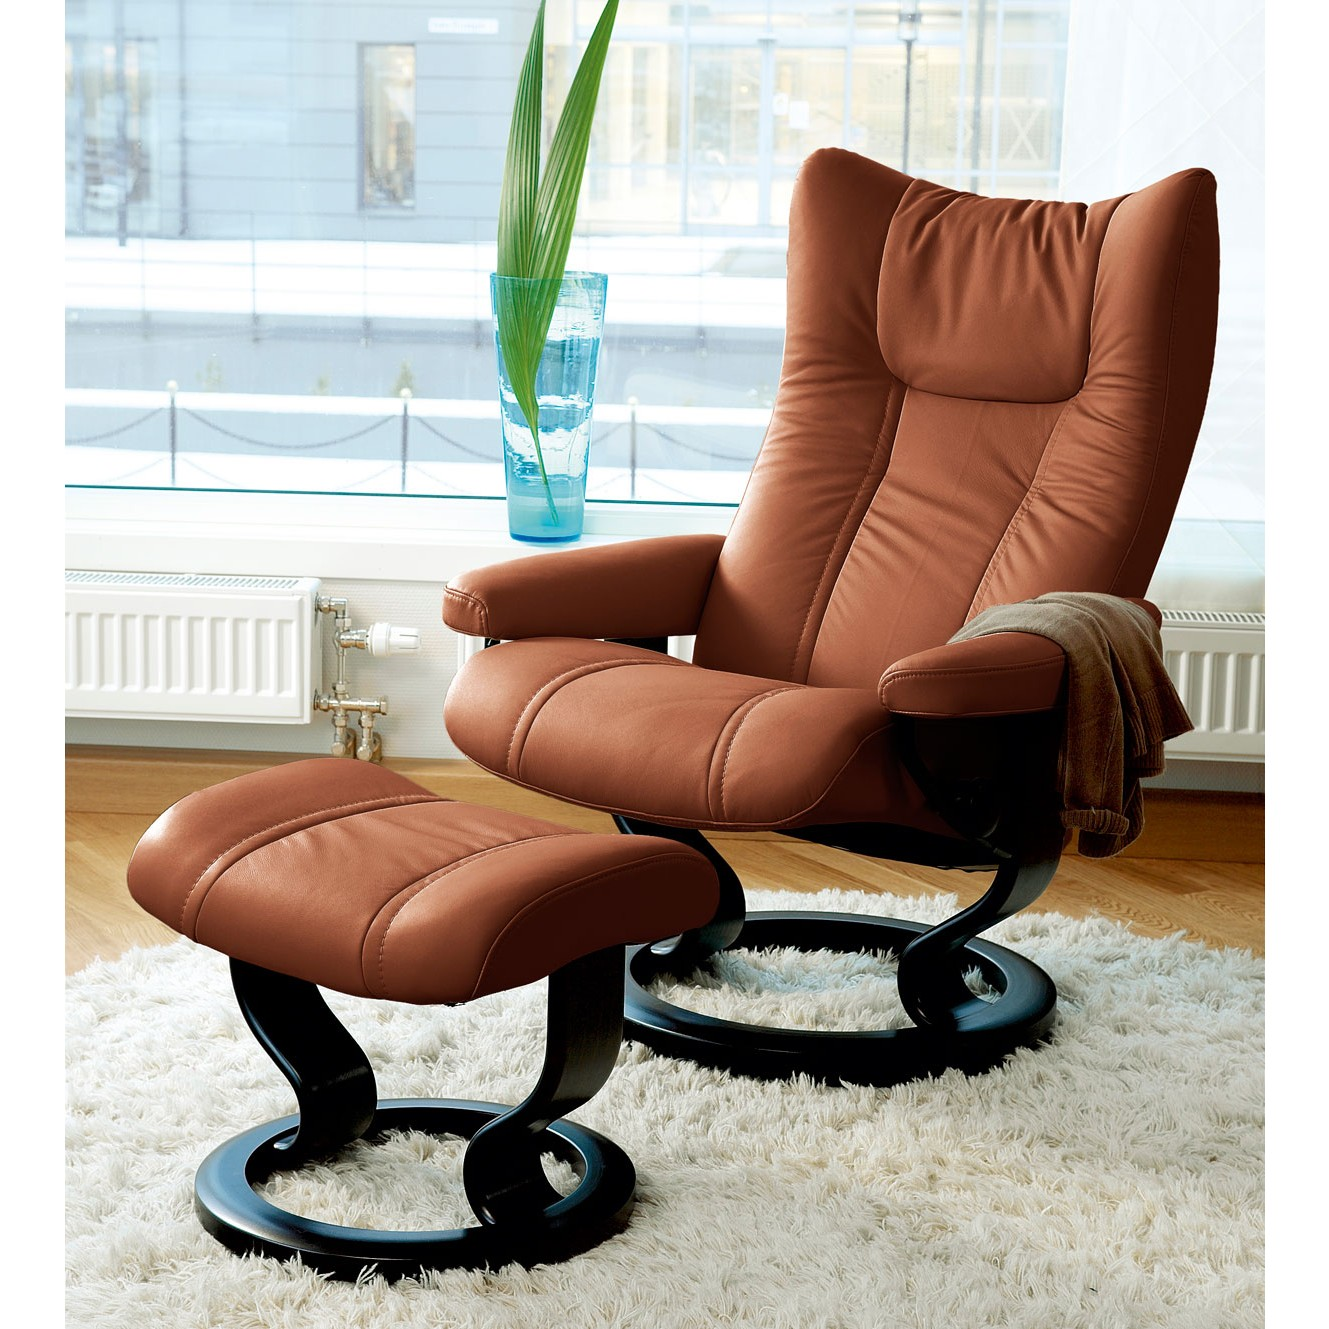 $500 Off Signature And LegComfort Recliners Or Buy Multiple Seats And Get  Up To $1,500 Off Other Stressless Products